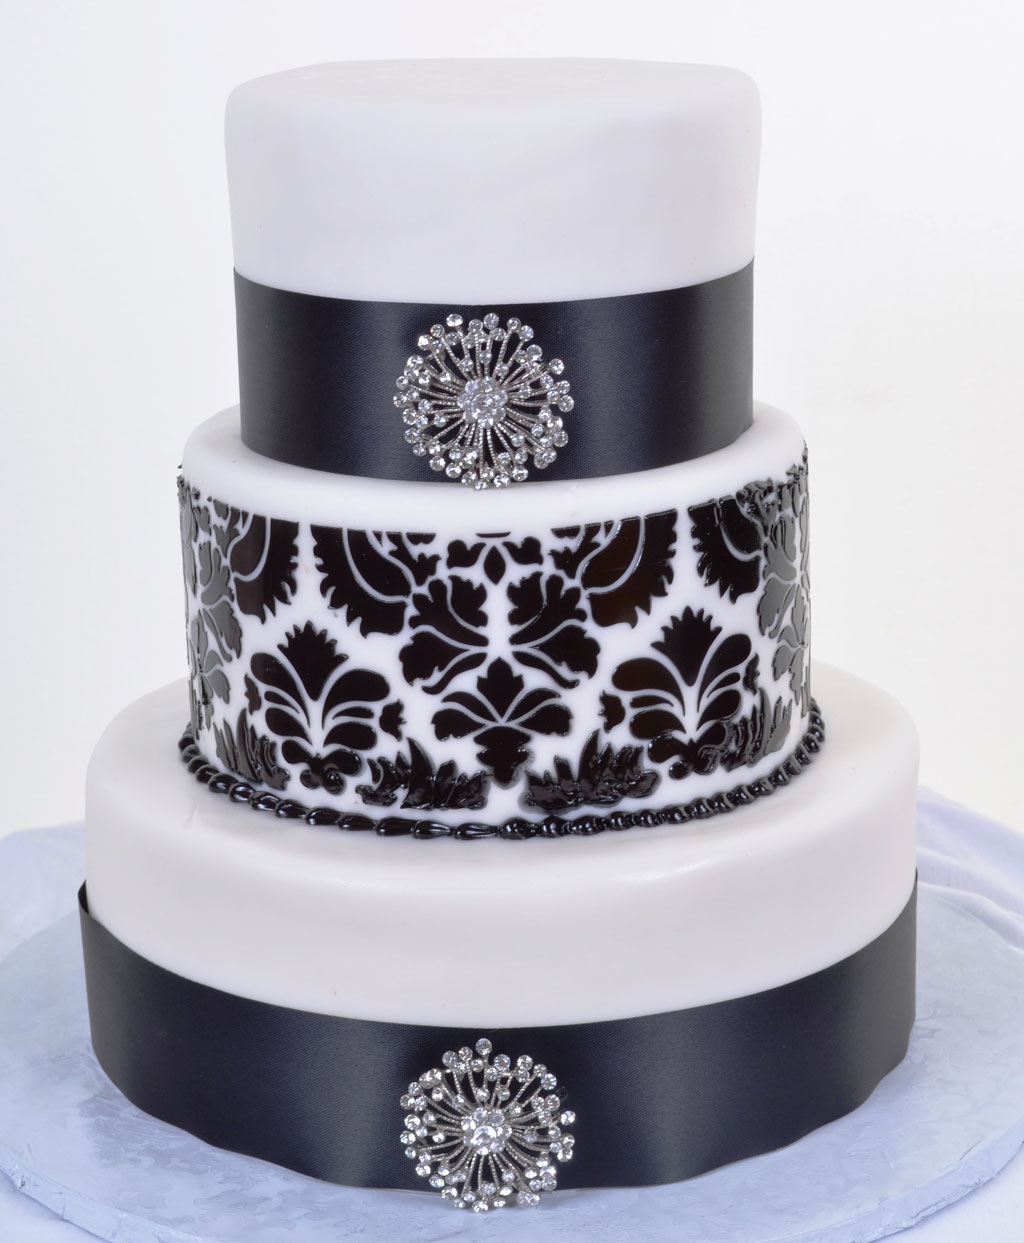 black white wedding cakes wedding cake cake ideas by. Black Bedroom Furniture Sets. Home Design Ideas